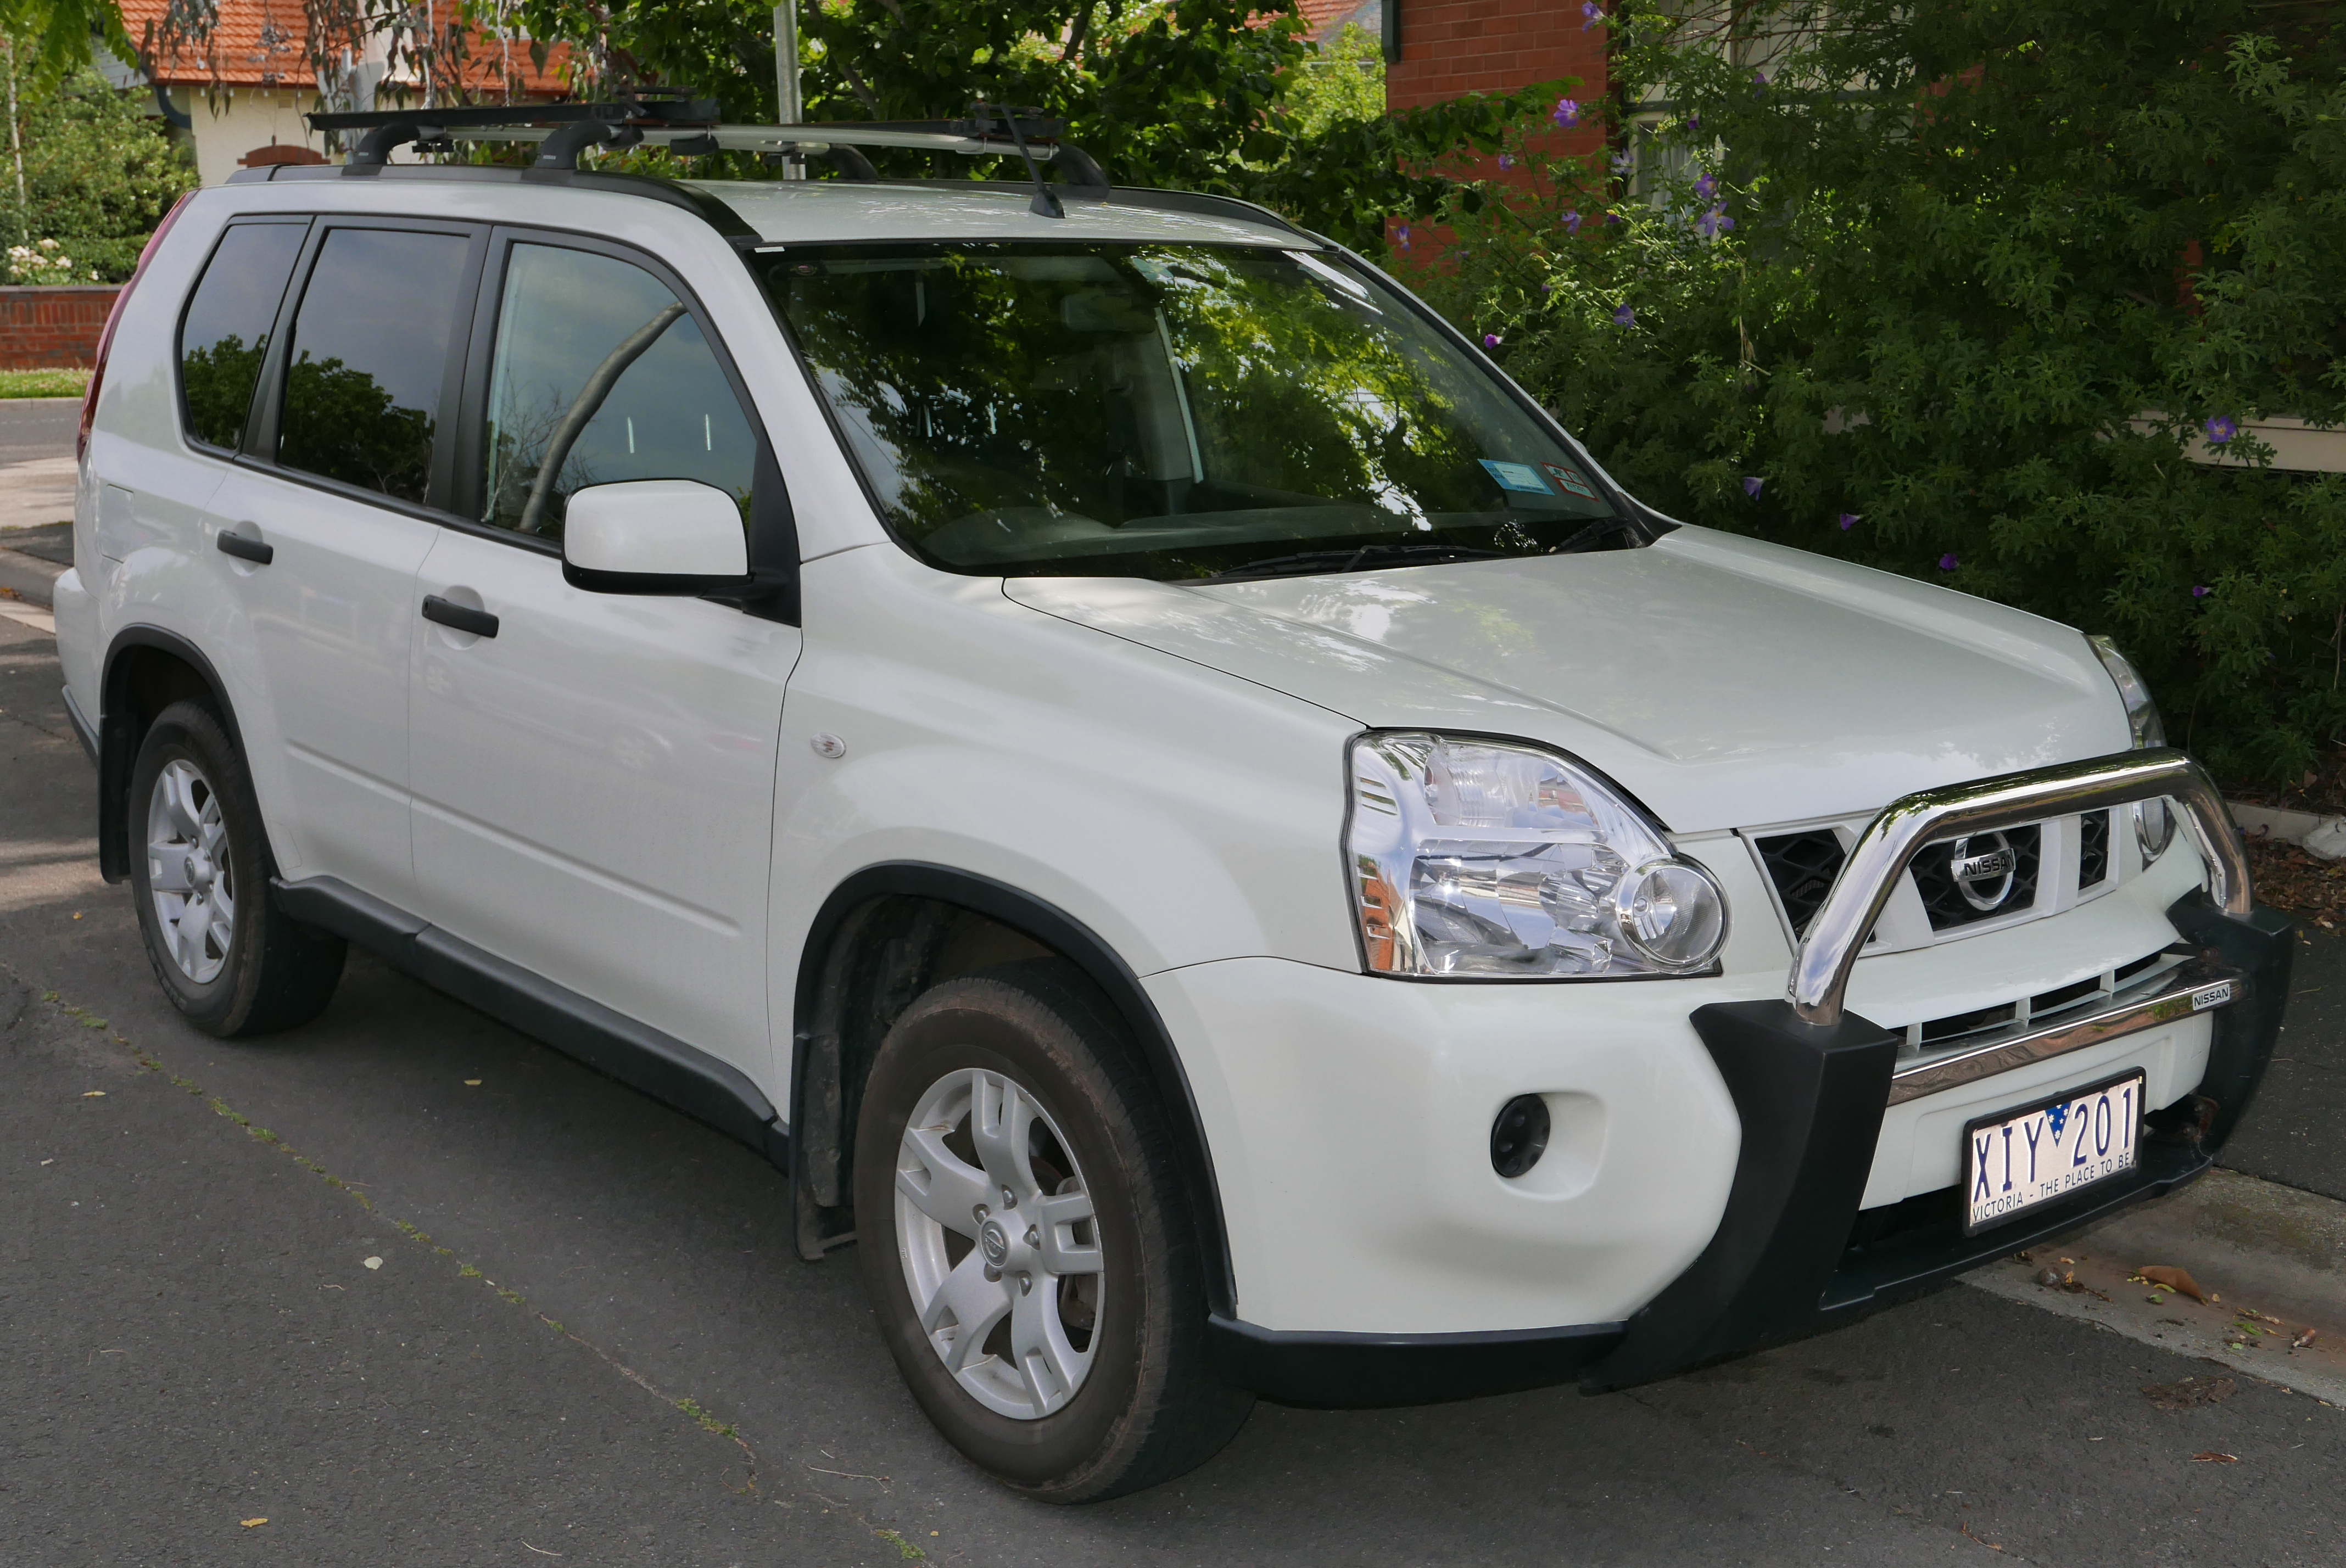 Nissan x-treme trail gives rise to a special x-trail.